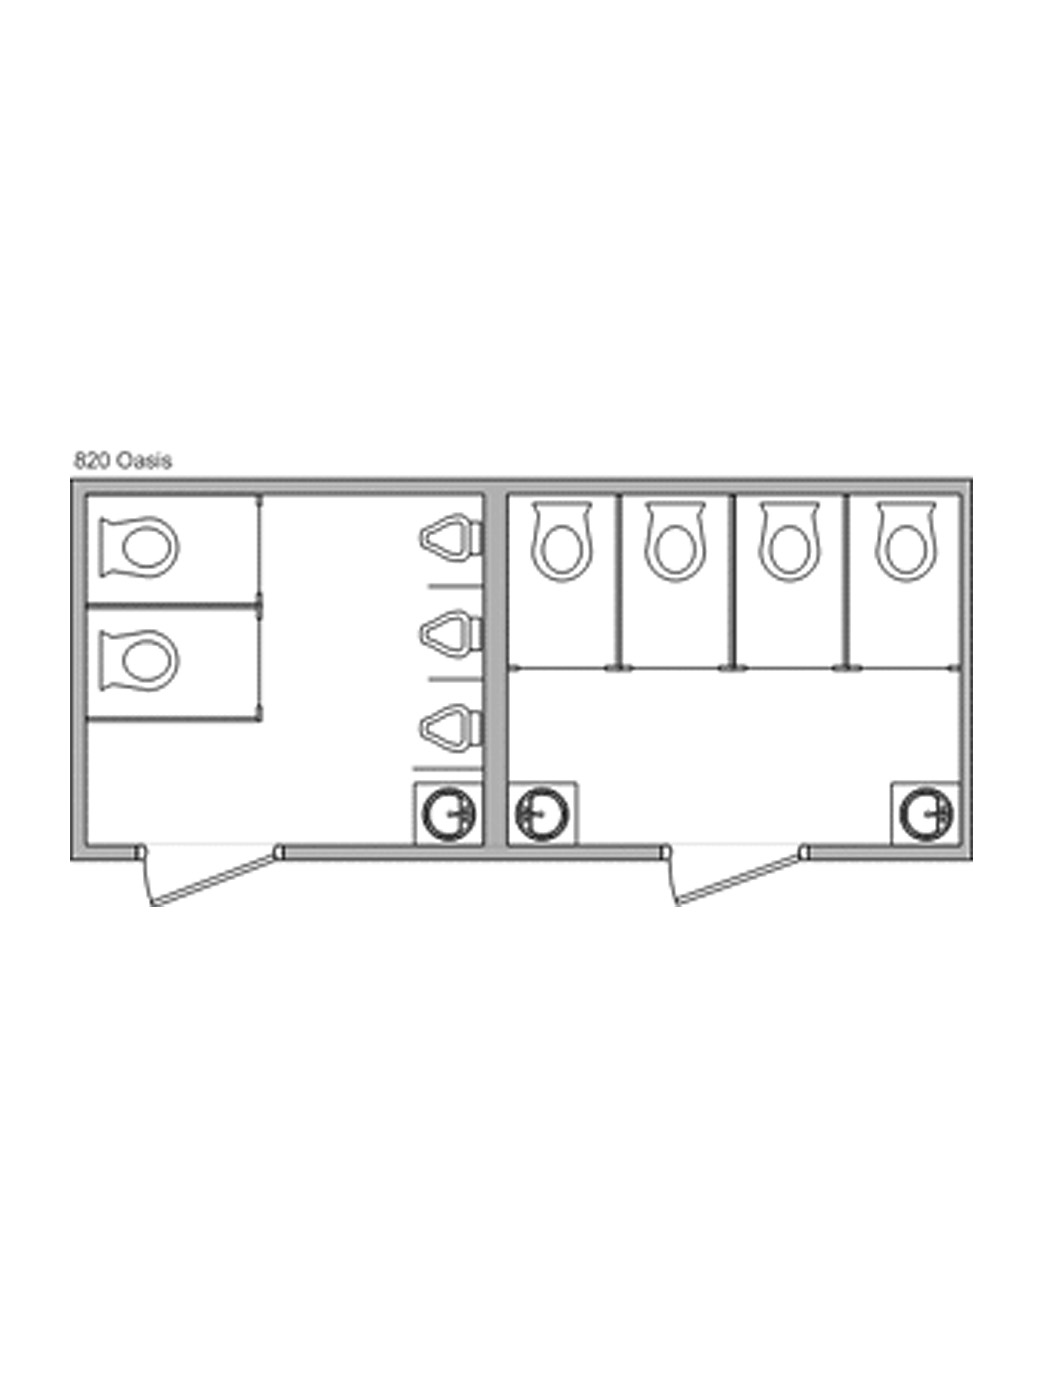 20-foot Luxury Restroom Trailer - image jj-luxury-restroom-trailer-floorplan-20ft on https://jimmysjohnnys.com